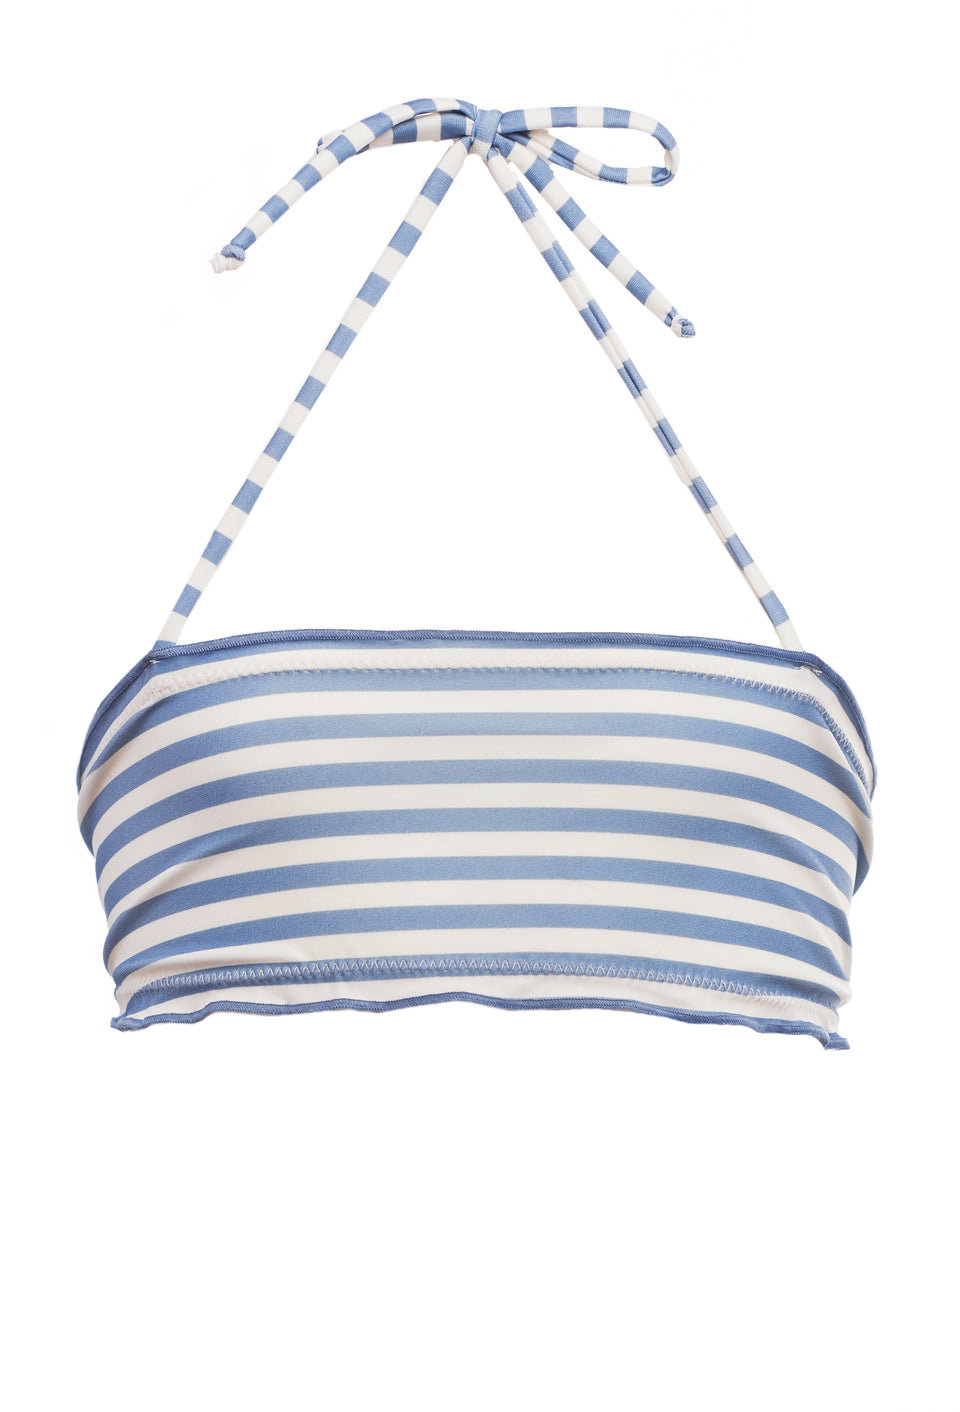 Attina-POWDER BLUE STRIPE